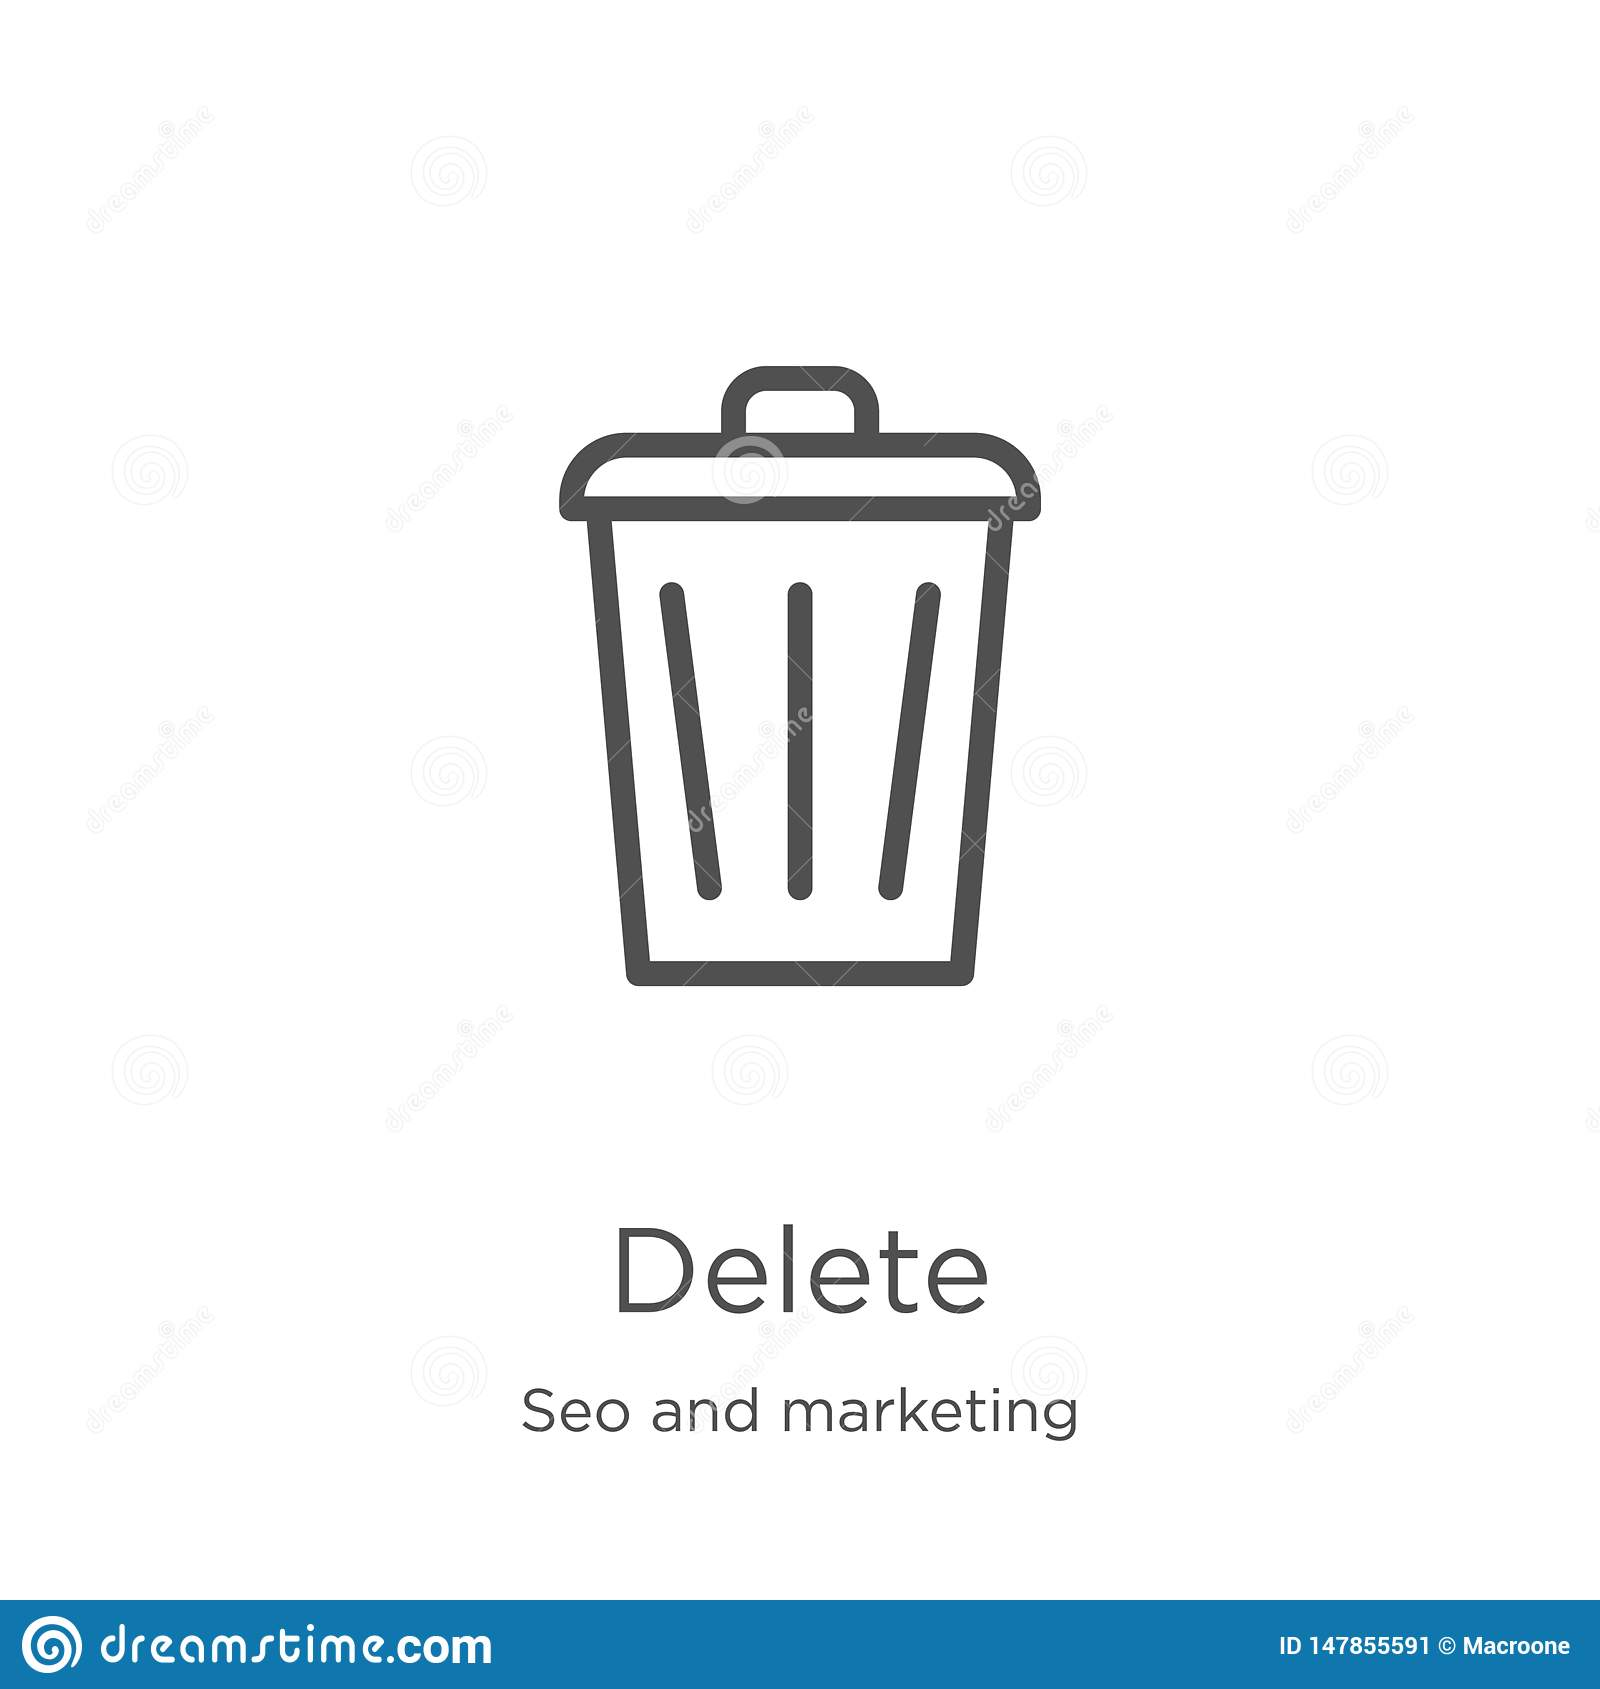 delete icon vector from seo and marketing collection. Thin line delete outline icon vector illustration. Outline, thin line delete